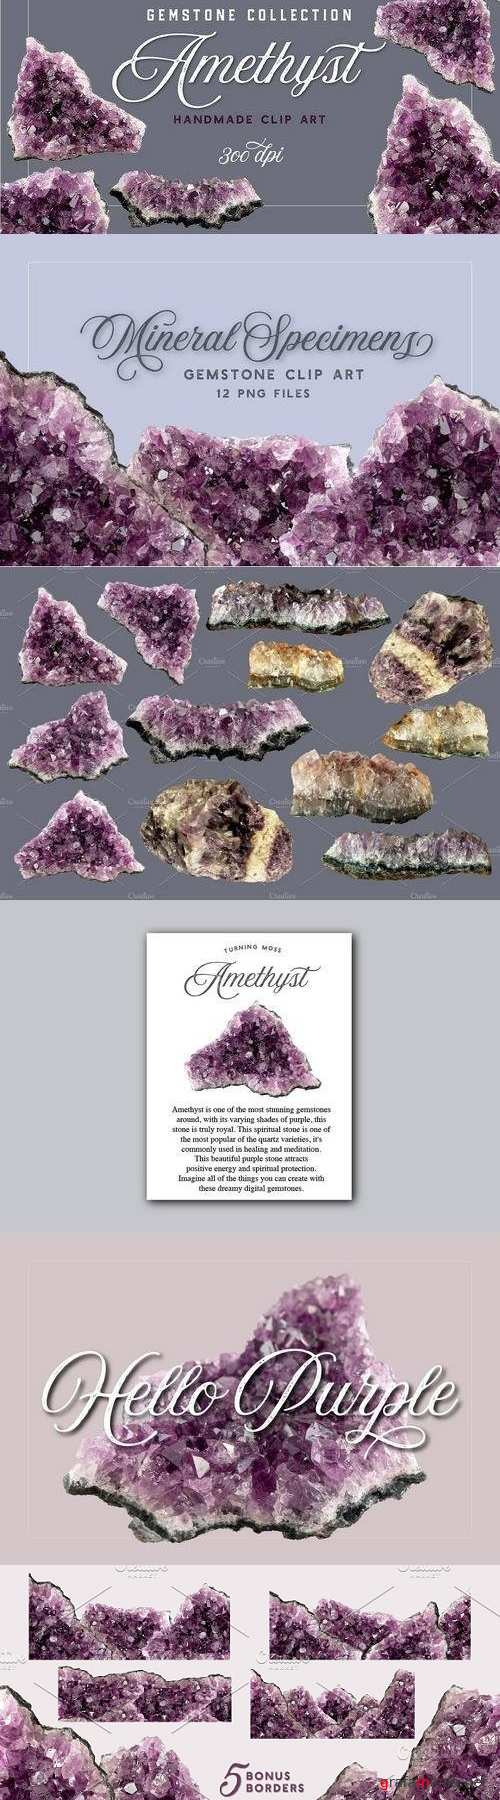 Amethyst - Gemstone Specimens 1912815